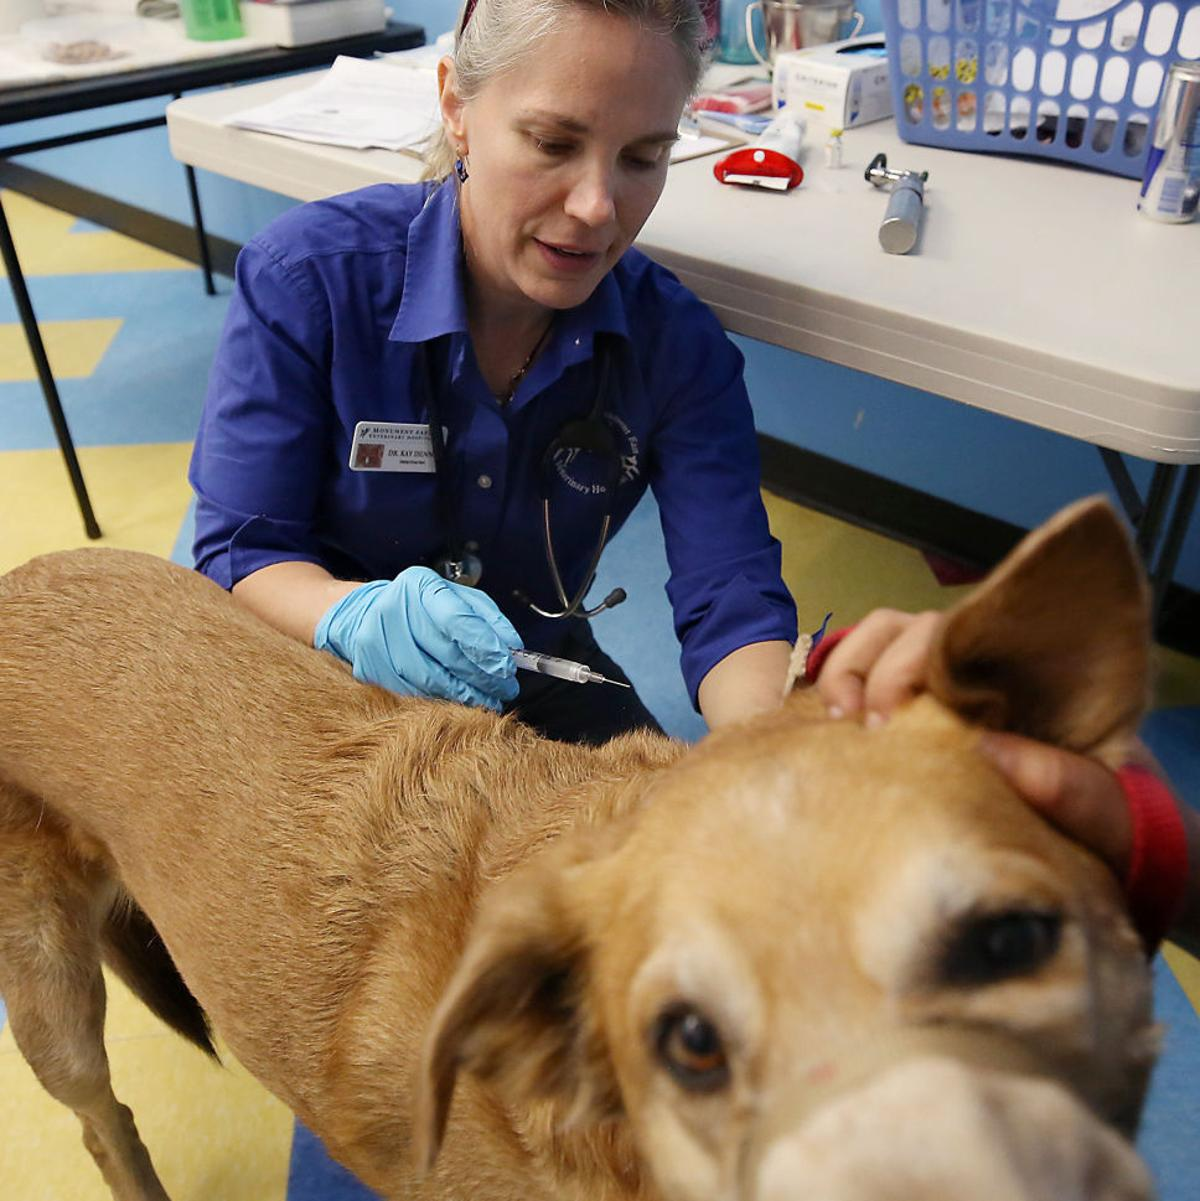 Contagious disease that can spread to humans sickens Tucson dogs